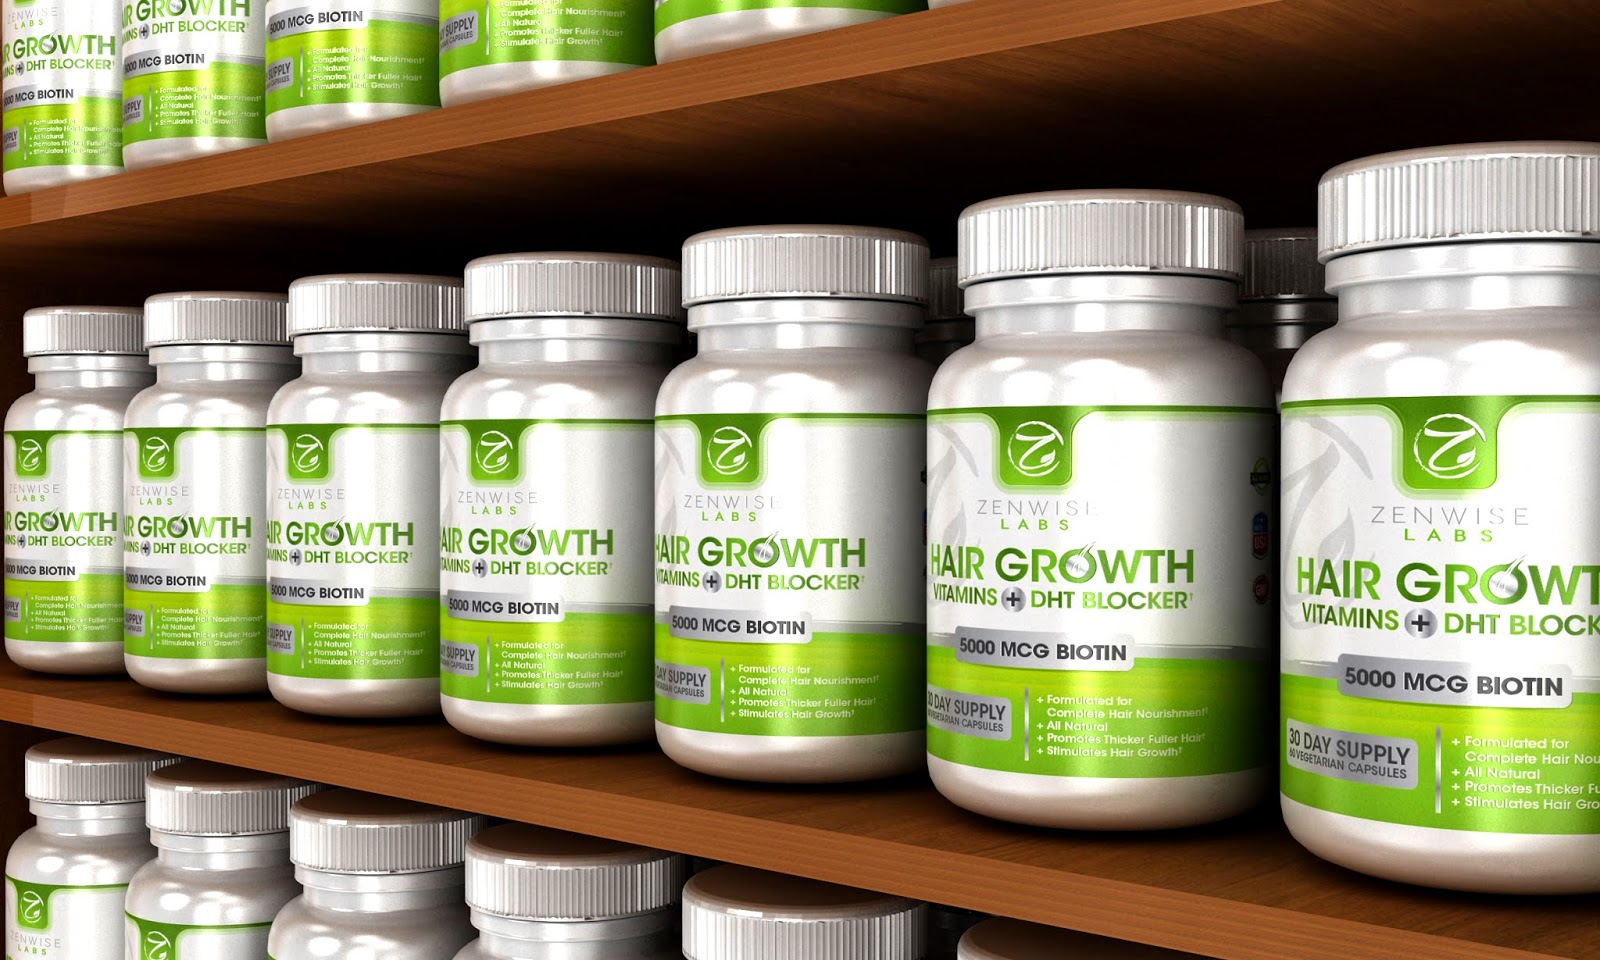 http://www.amazon.com/Growth-Vitamins-5000mcg-Biotin-Blocker/dp/B00ONH0S8U/ref=sr_1_1?ie=UTF8&qid=1424223838&sr=8-1&keywords=zenwise+hair+growth